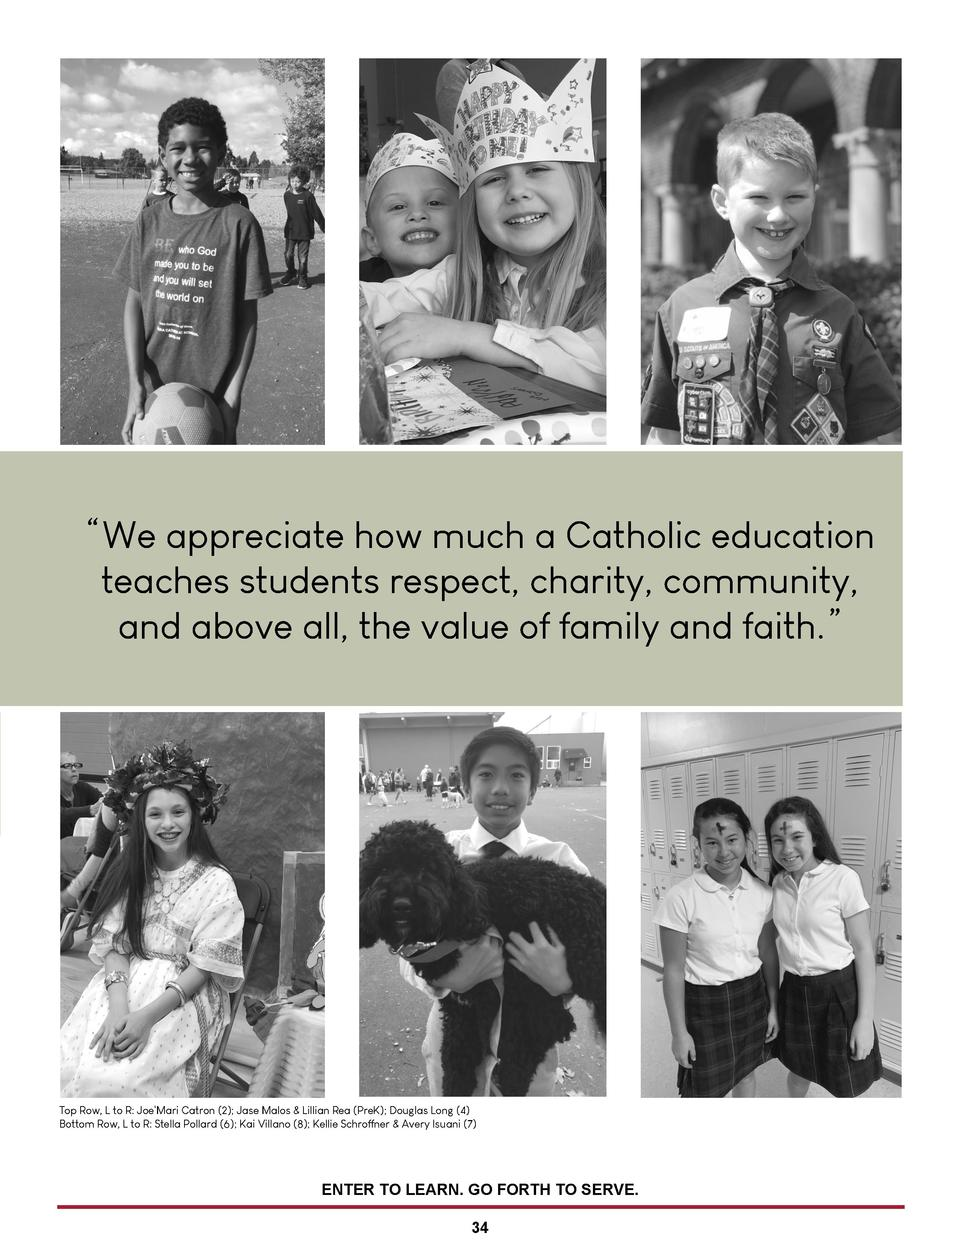 We appreciate how much a Catholic education teaches students respect, charity, community, and above all, the value of f...